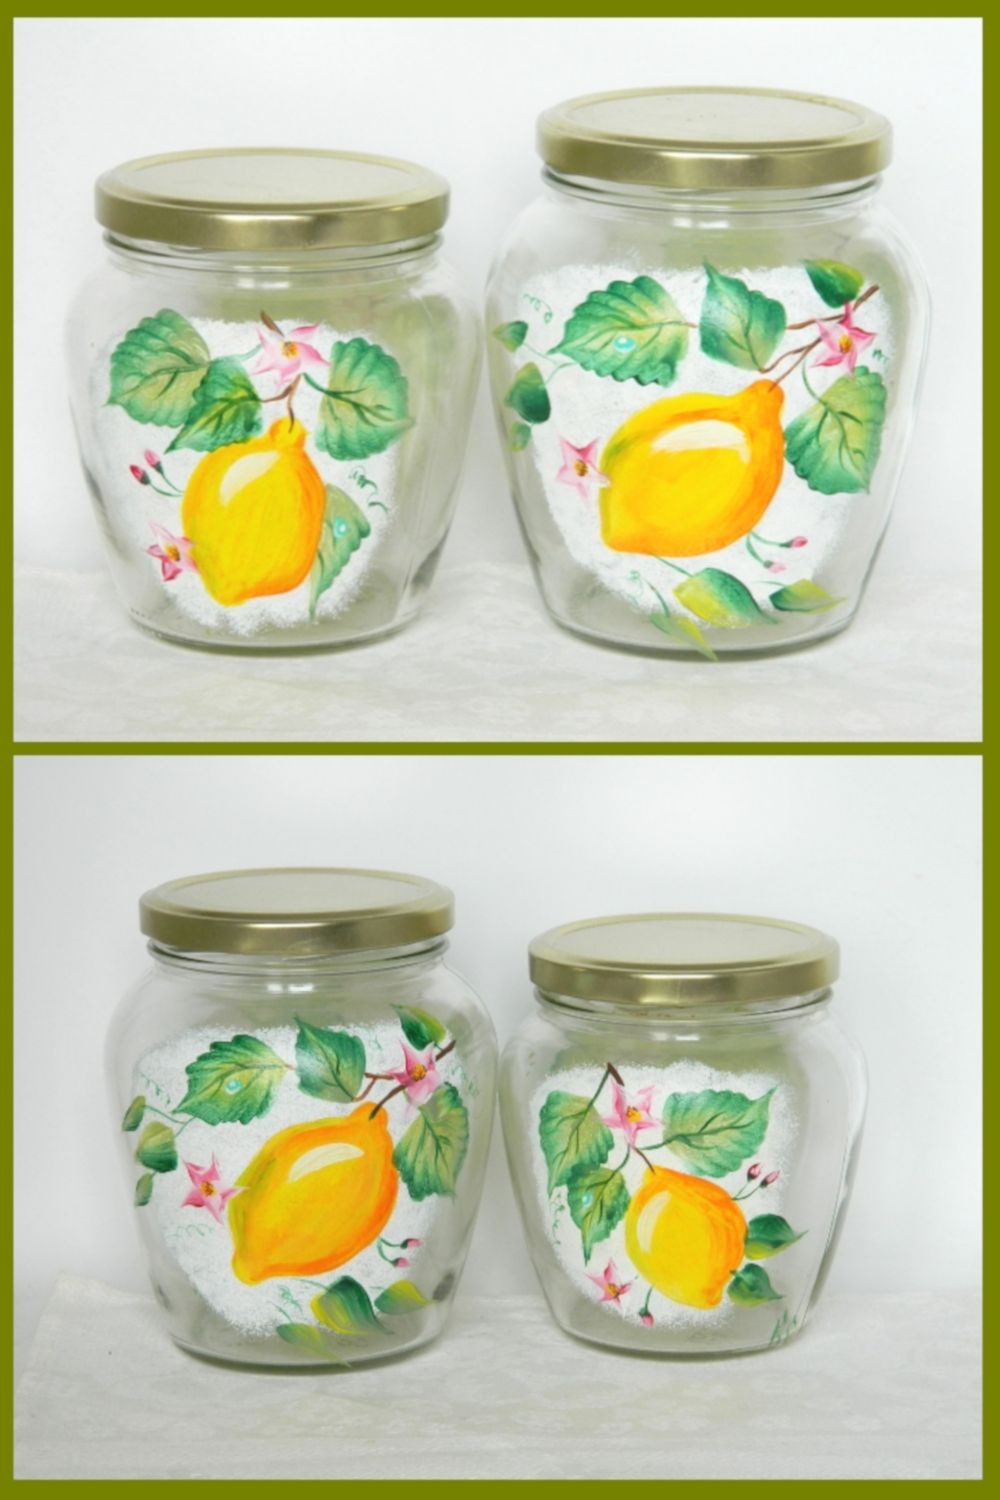 Hand Painted Glass Jars With Lid Jam Pot Kitchen Canister Set Lemon Glass Cookie Jars Colorful Glassware Food Storage Of Decorative Canister Painting Glass Jars Glass Cookie Jars Glass Jars With